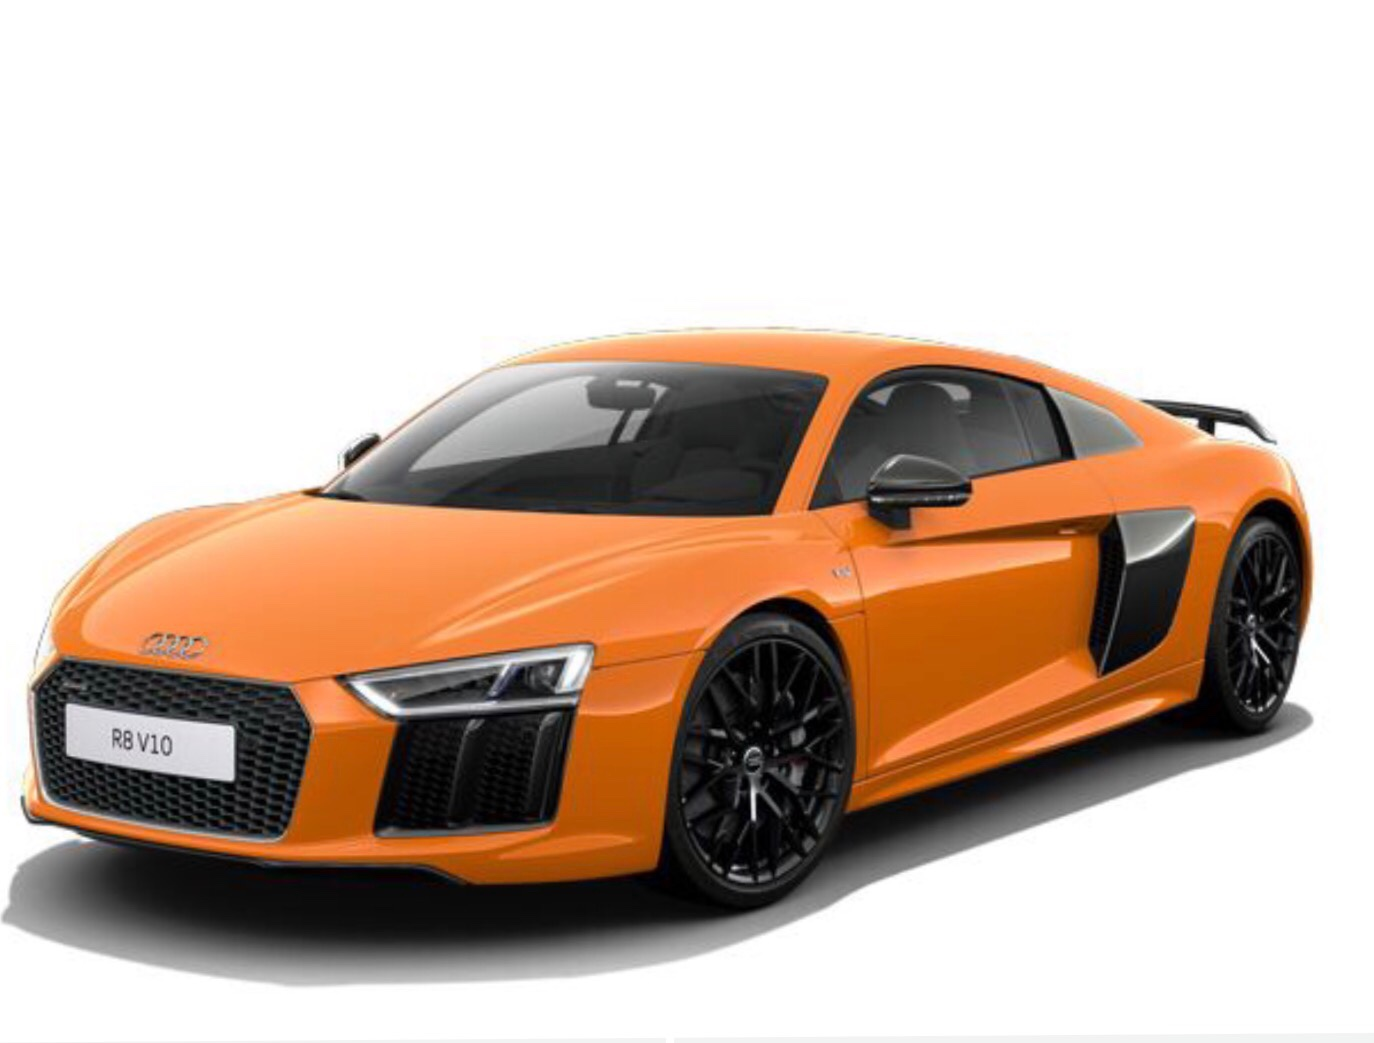 R8 V10 Plus New Discount Rs246 Com Forum The World S 1 Audi R S And Rs Enthusiast Community